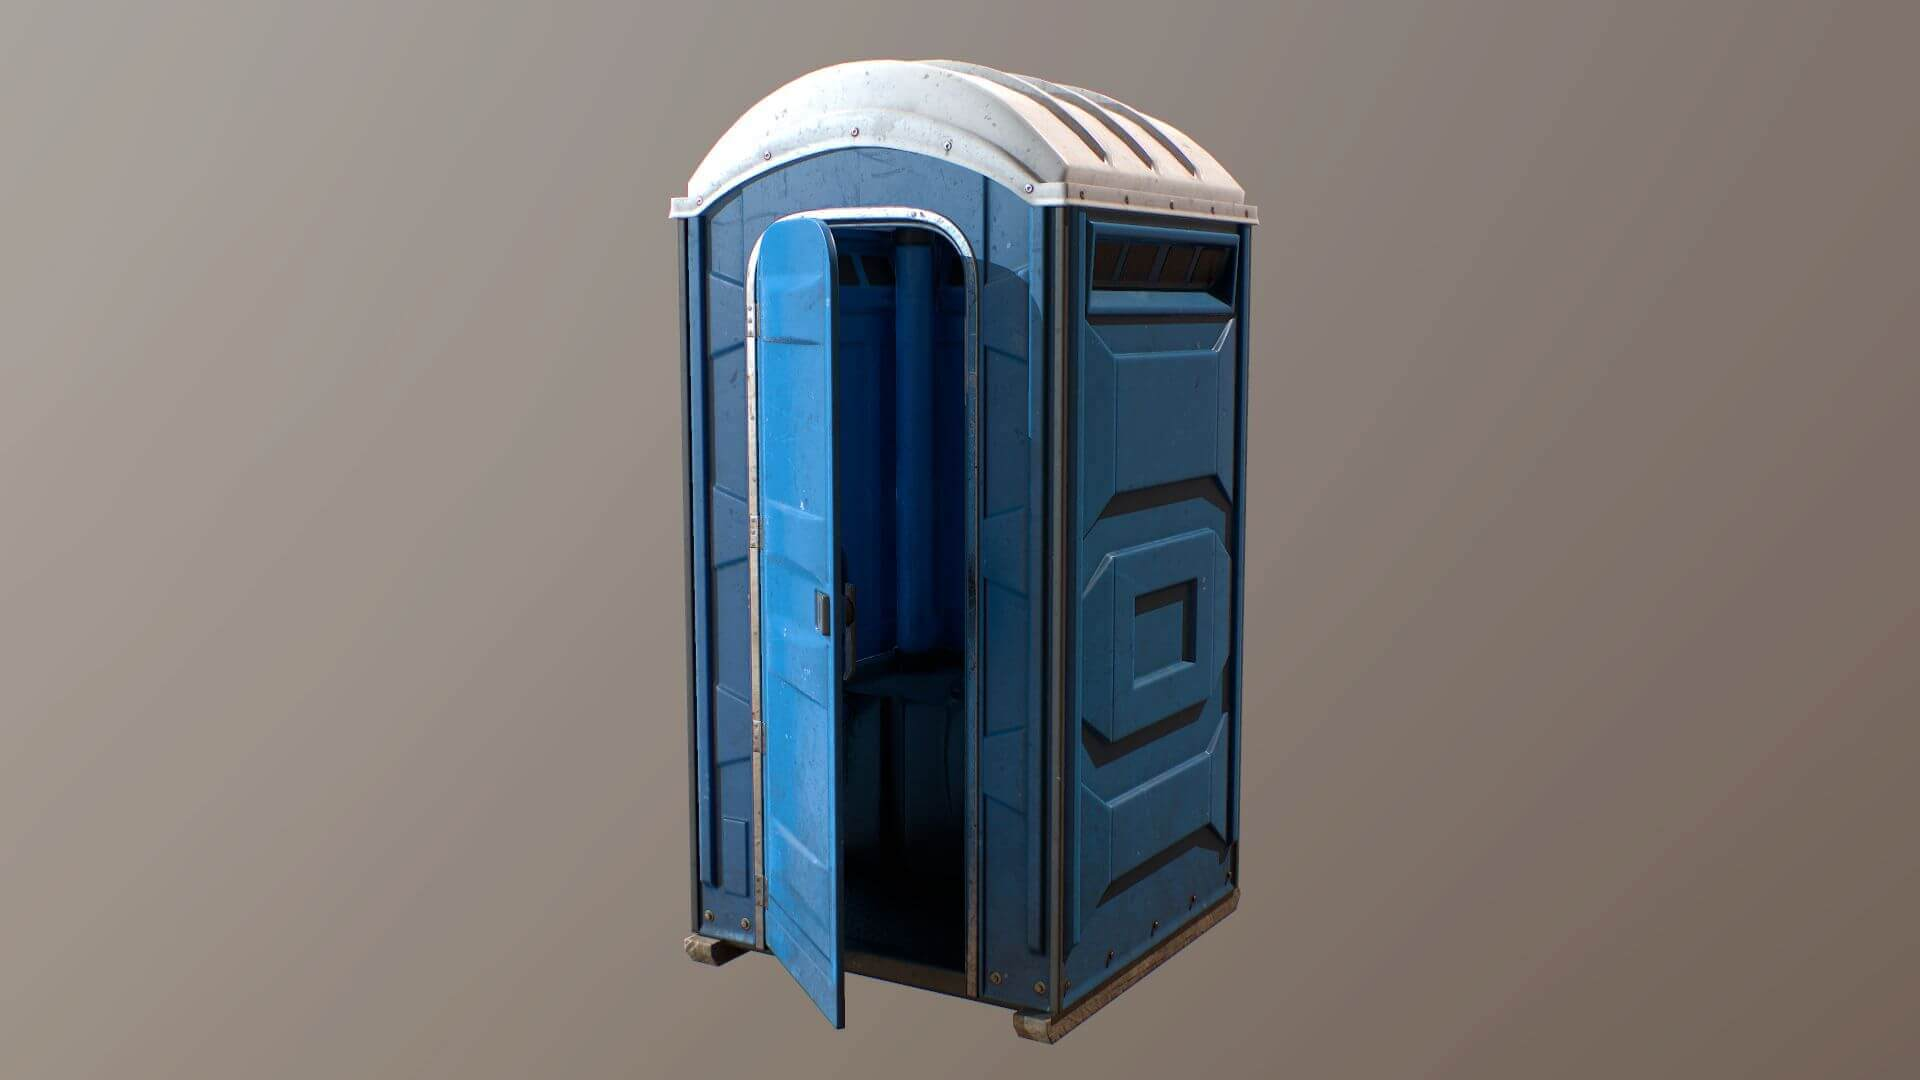 Portable Toilet-Mesa Septic Tank Services, Installation, & Repairs-We offer Septic Service & Repairs, Septic Tank Installations, Septic Tank Cleaning, Commercial, Septic System, Drain Cleaning, Line Snaking, Portable Toilet, Grease Trap Pumping & Cleaning, Septic Tank Pumping, Sewage Pump, Sewer Line Repair, Septic Tank Replacement, Septic Maintenance, Sewer Line Replacement, Porta Potty Rentals